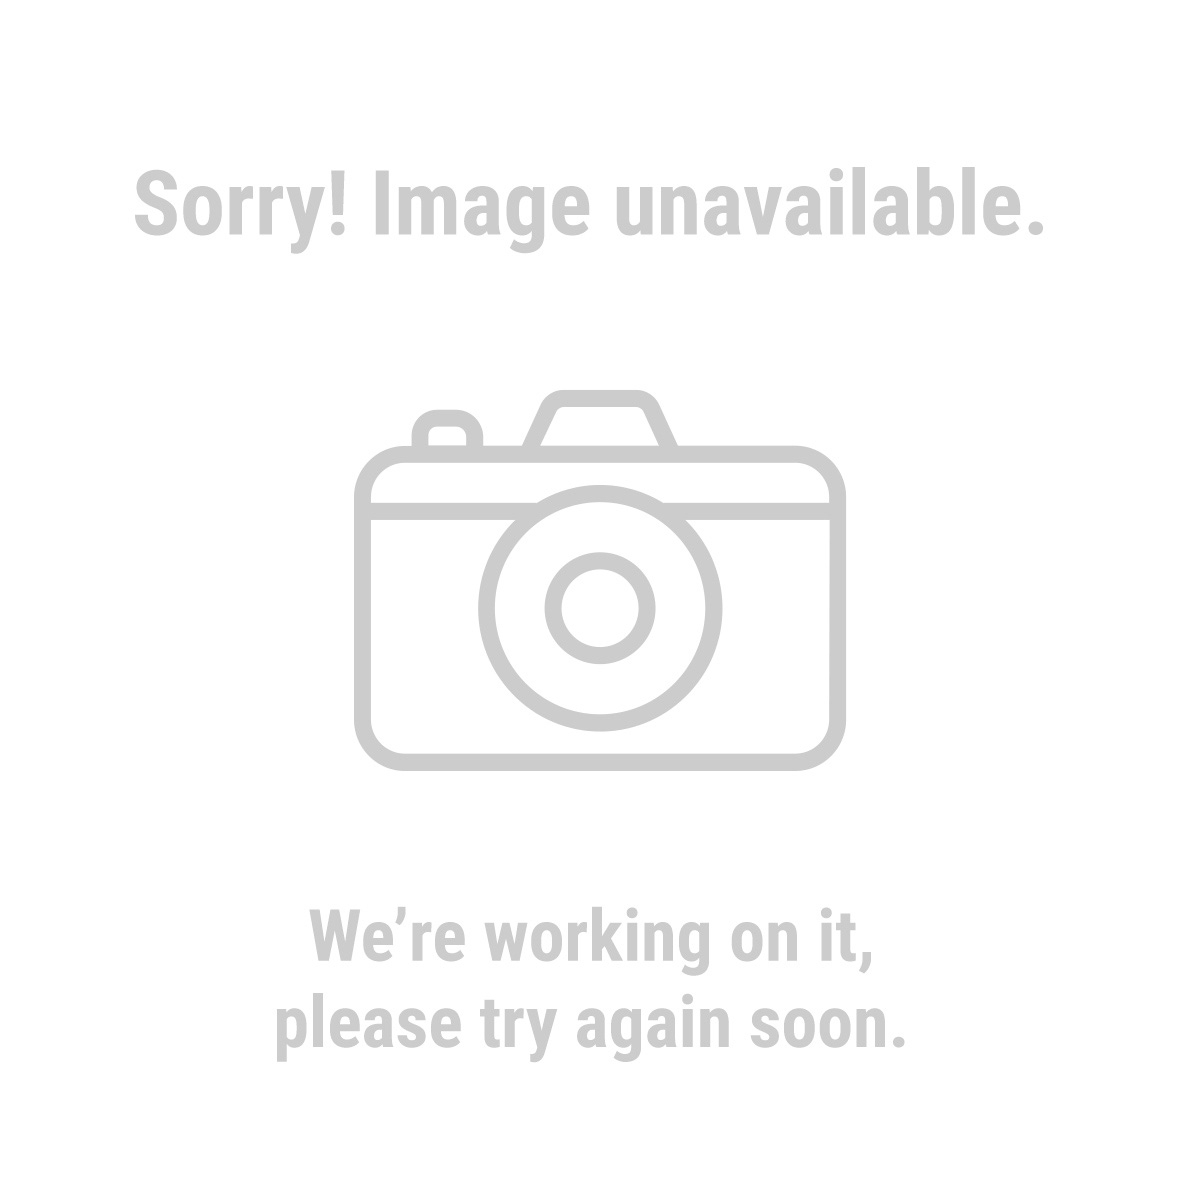 Rust-Oleum 67964 Gray Rust-Oleum Self-Etching Primer Spray